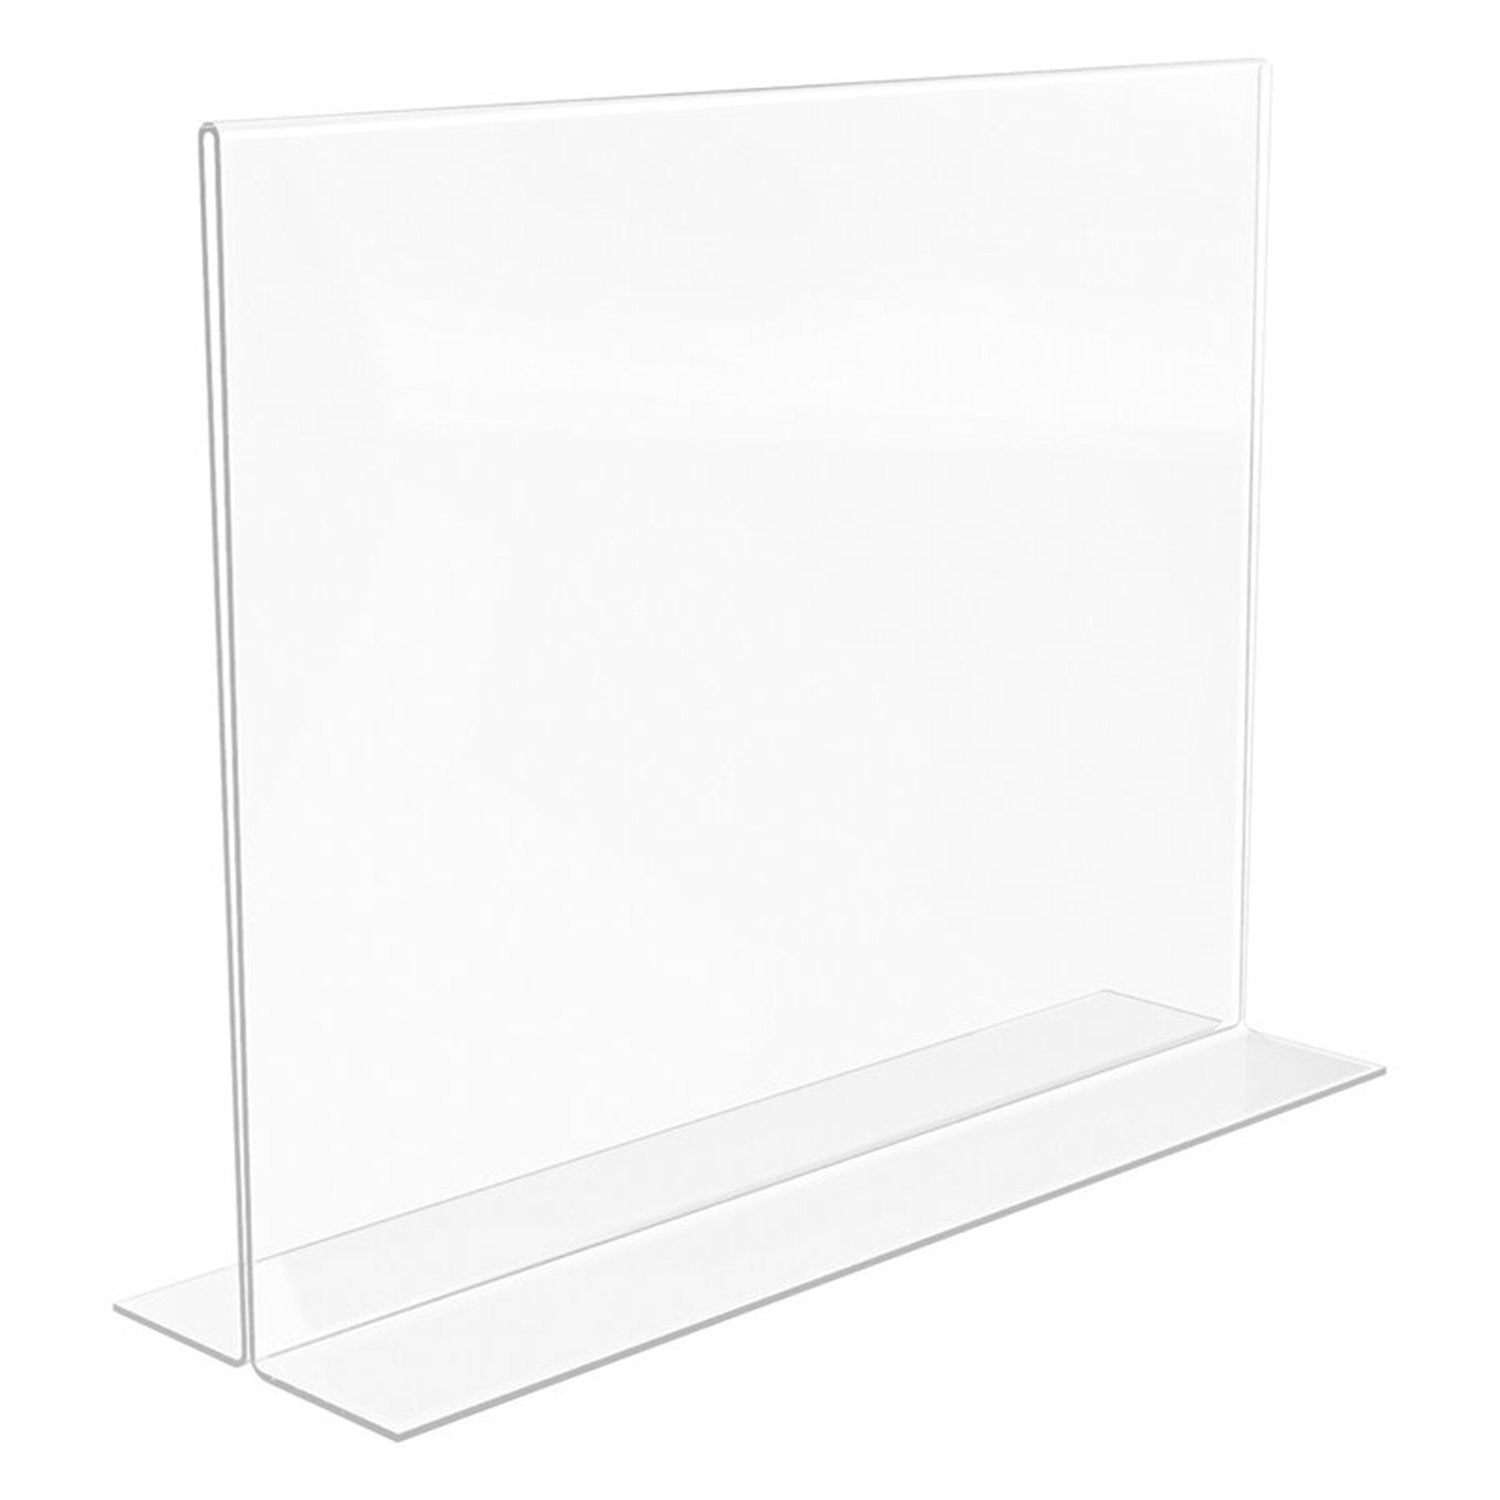 "11""H x 8-1/2""W VERTICAL CARDHOLDER PLEXI BOTTOM LOAD - Display Fixture Warehouse Retail"